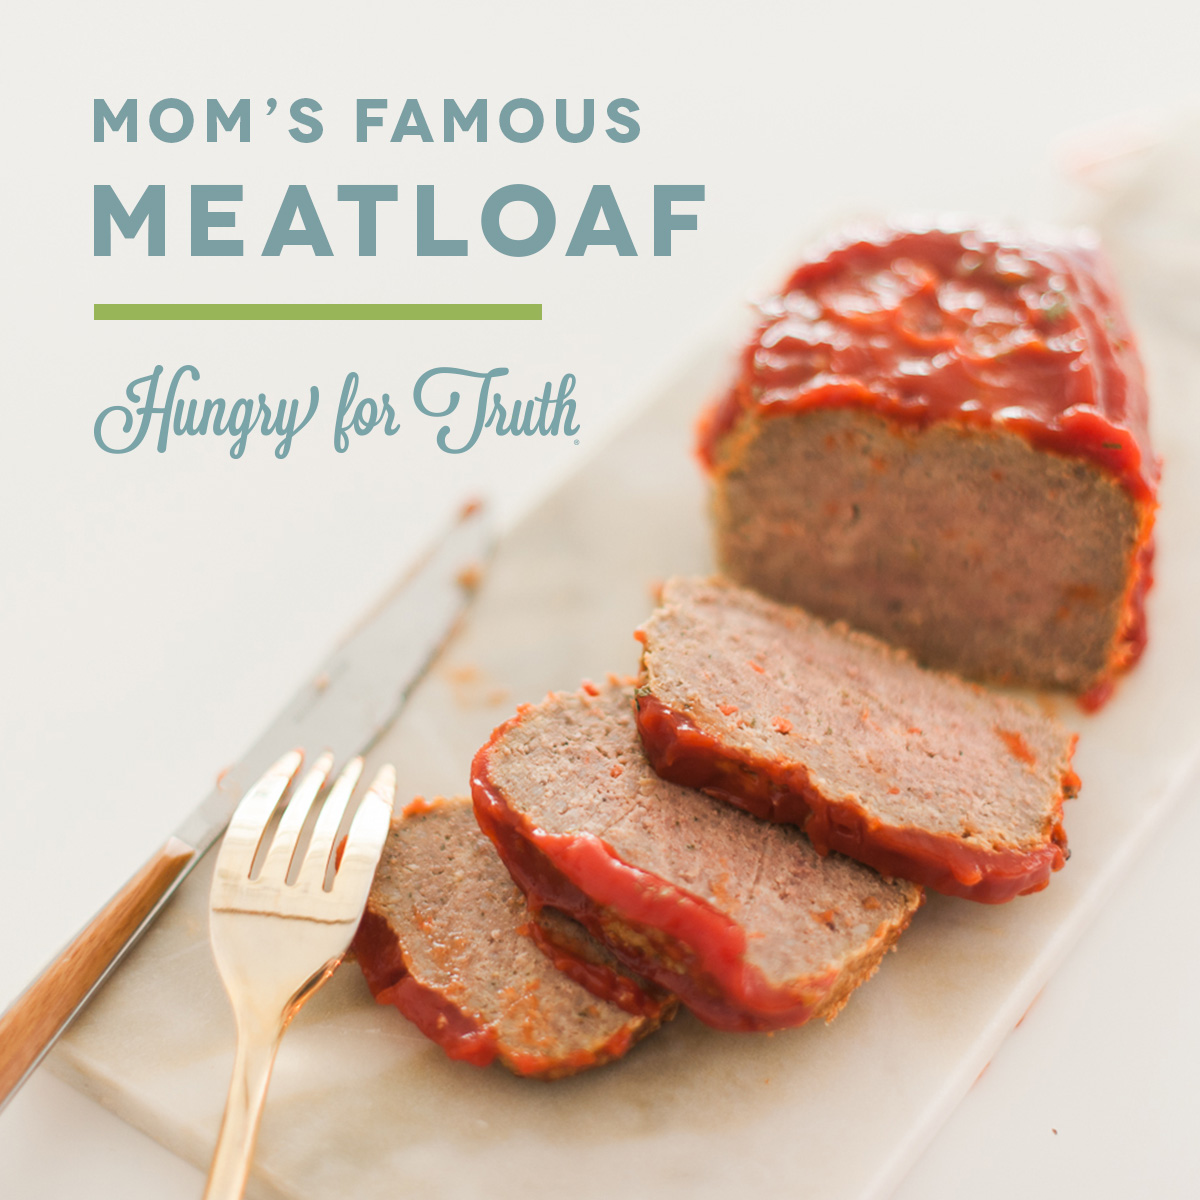 hungry for truth sd south dakota agriculture farm family farming production agriculture non gmo gmo organic conventional soybean farmers meatloaf recipe easy to make homemade meatloaf recipe mom's meatloaf recipe healthy food